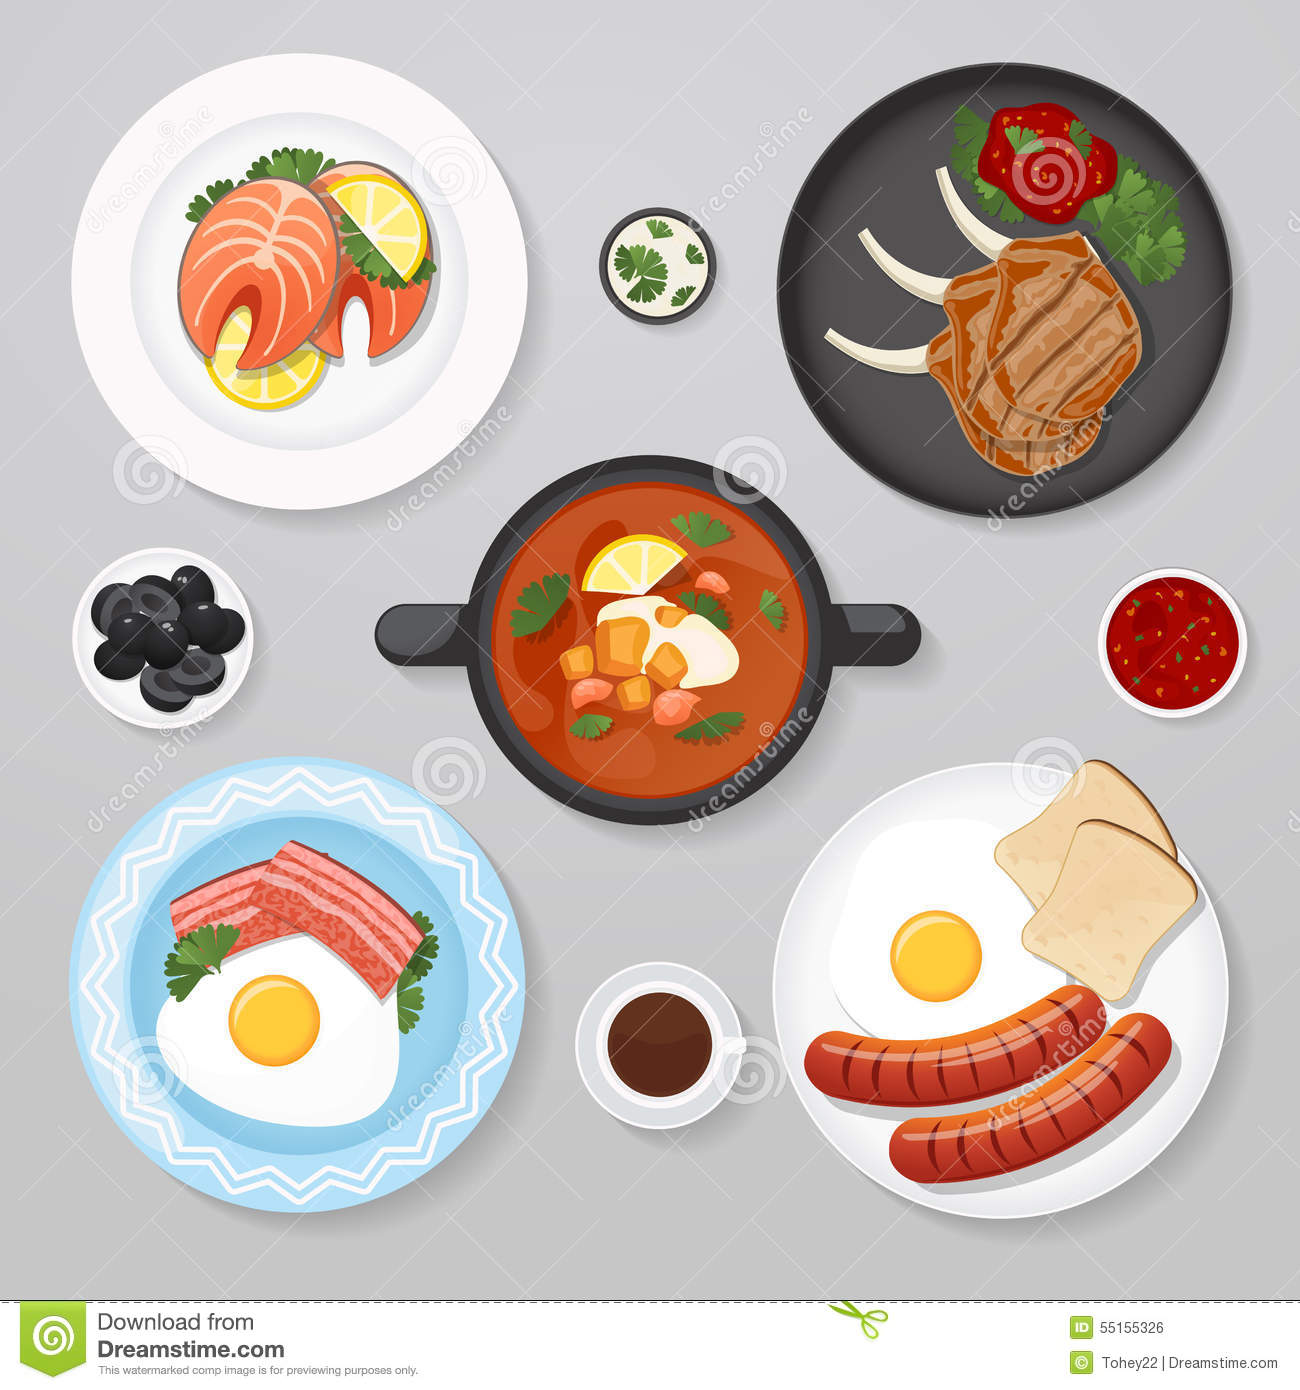 Plate With Food Top View Food Business Flat Lay Idea Stock Vector Image 55155326